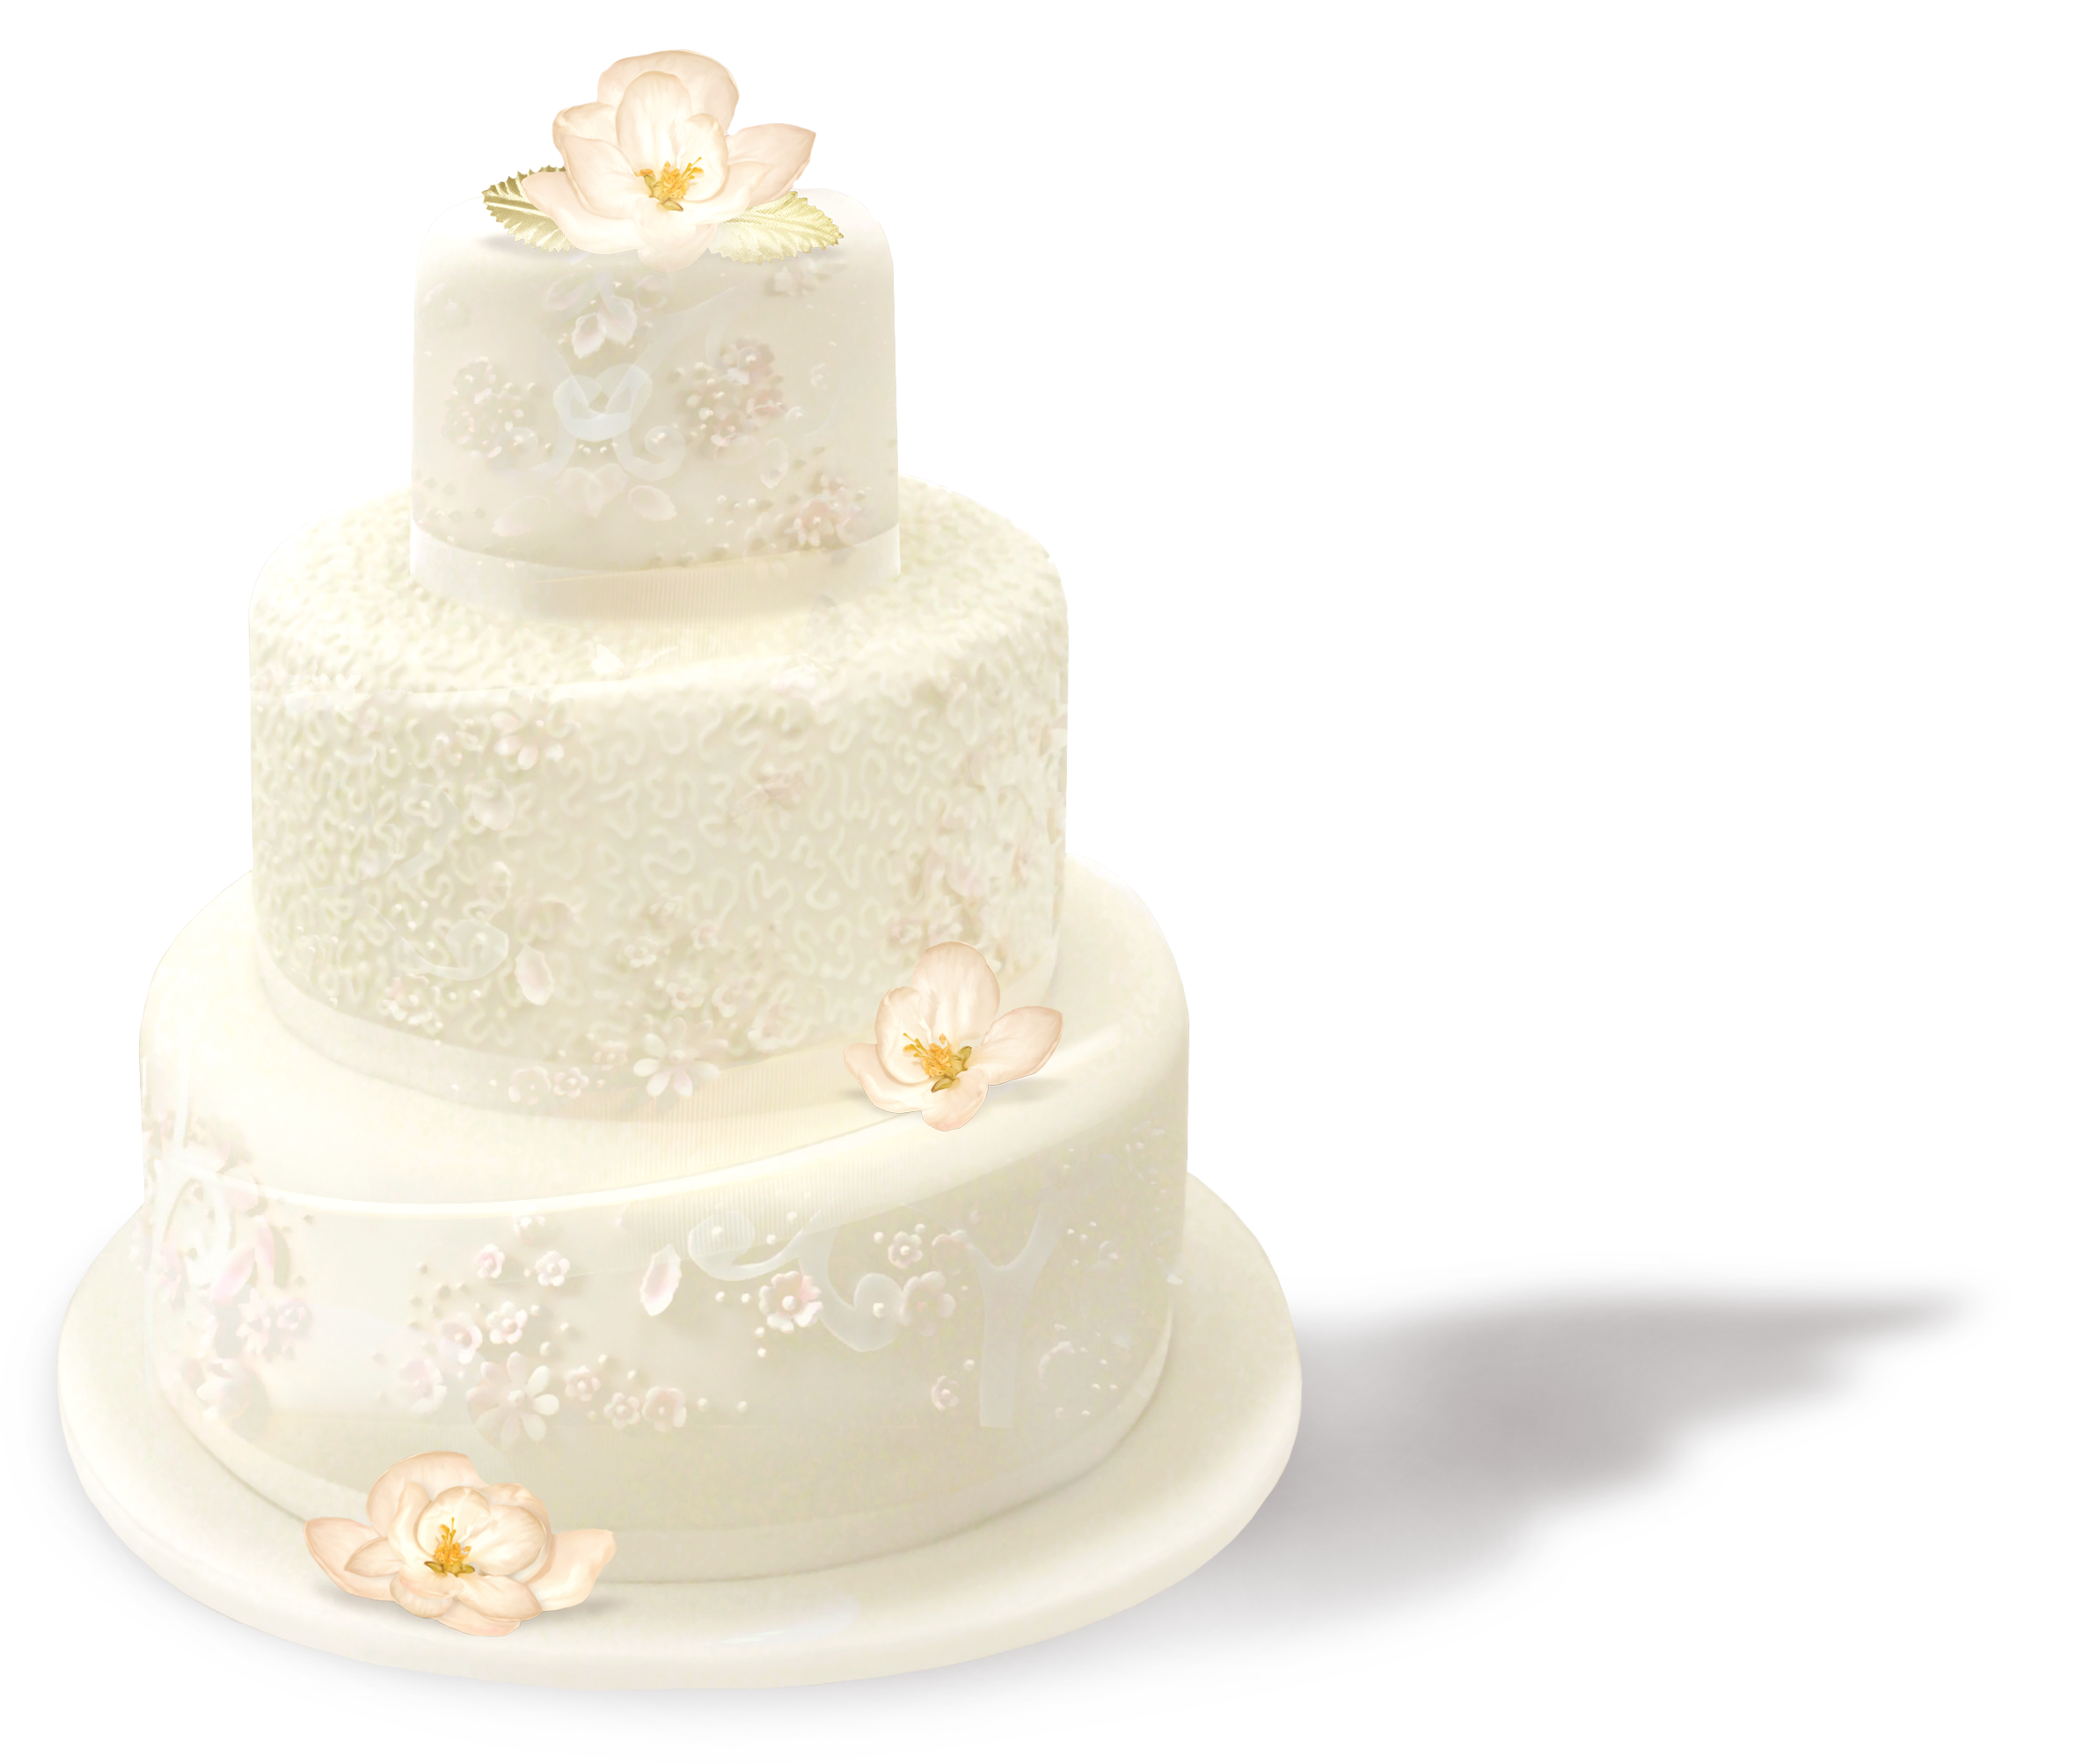 Wedding cake PNG - Wedding Cake HD PNG